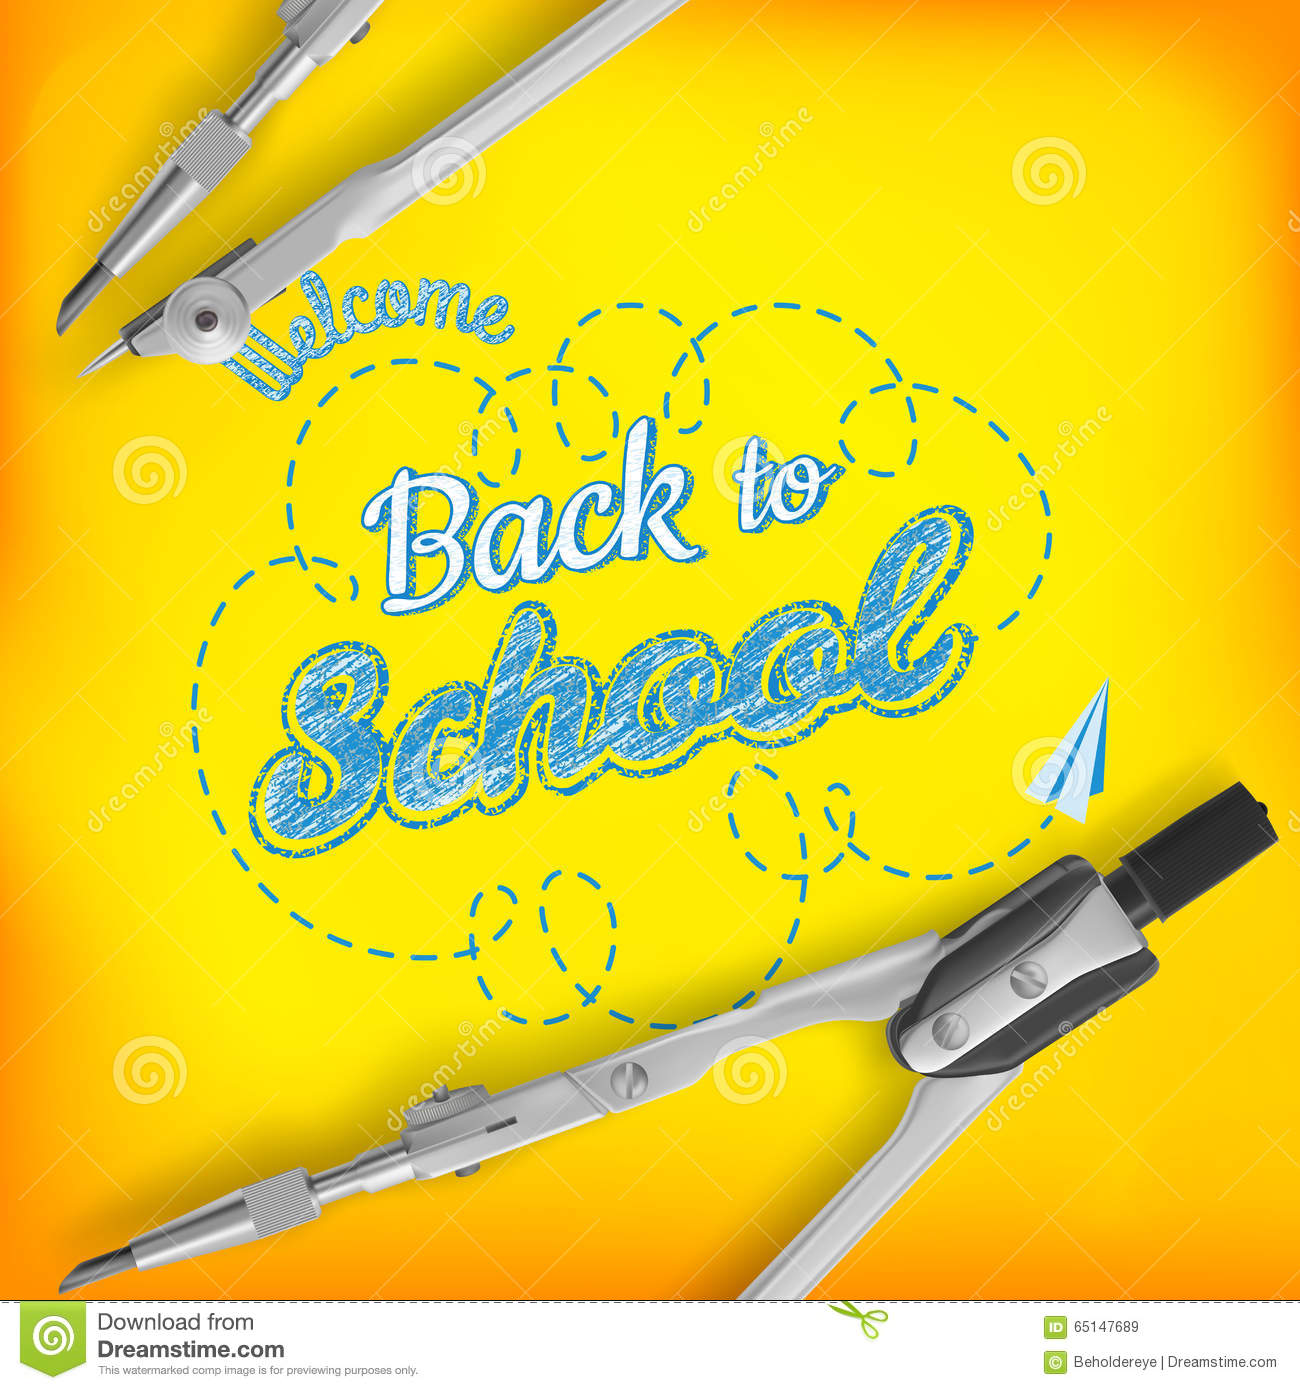 Welcome back to school greeting card eps 10 stock vector welcome back to school greeting card eps 10 kristyandbryce Gallery